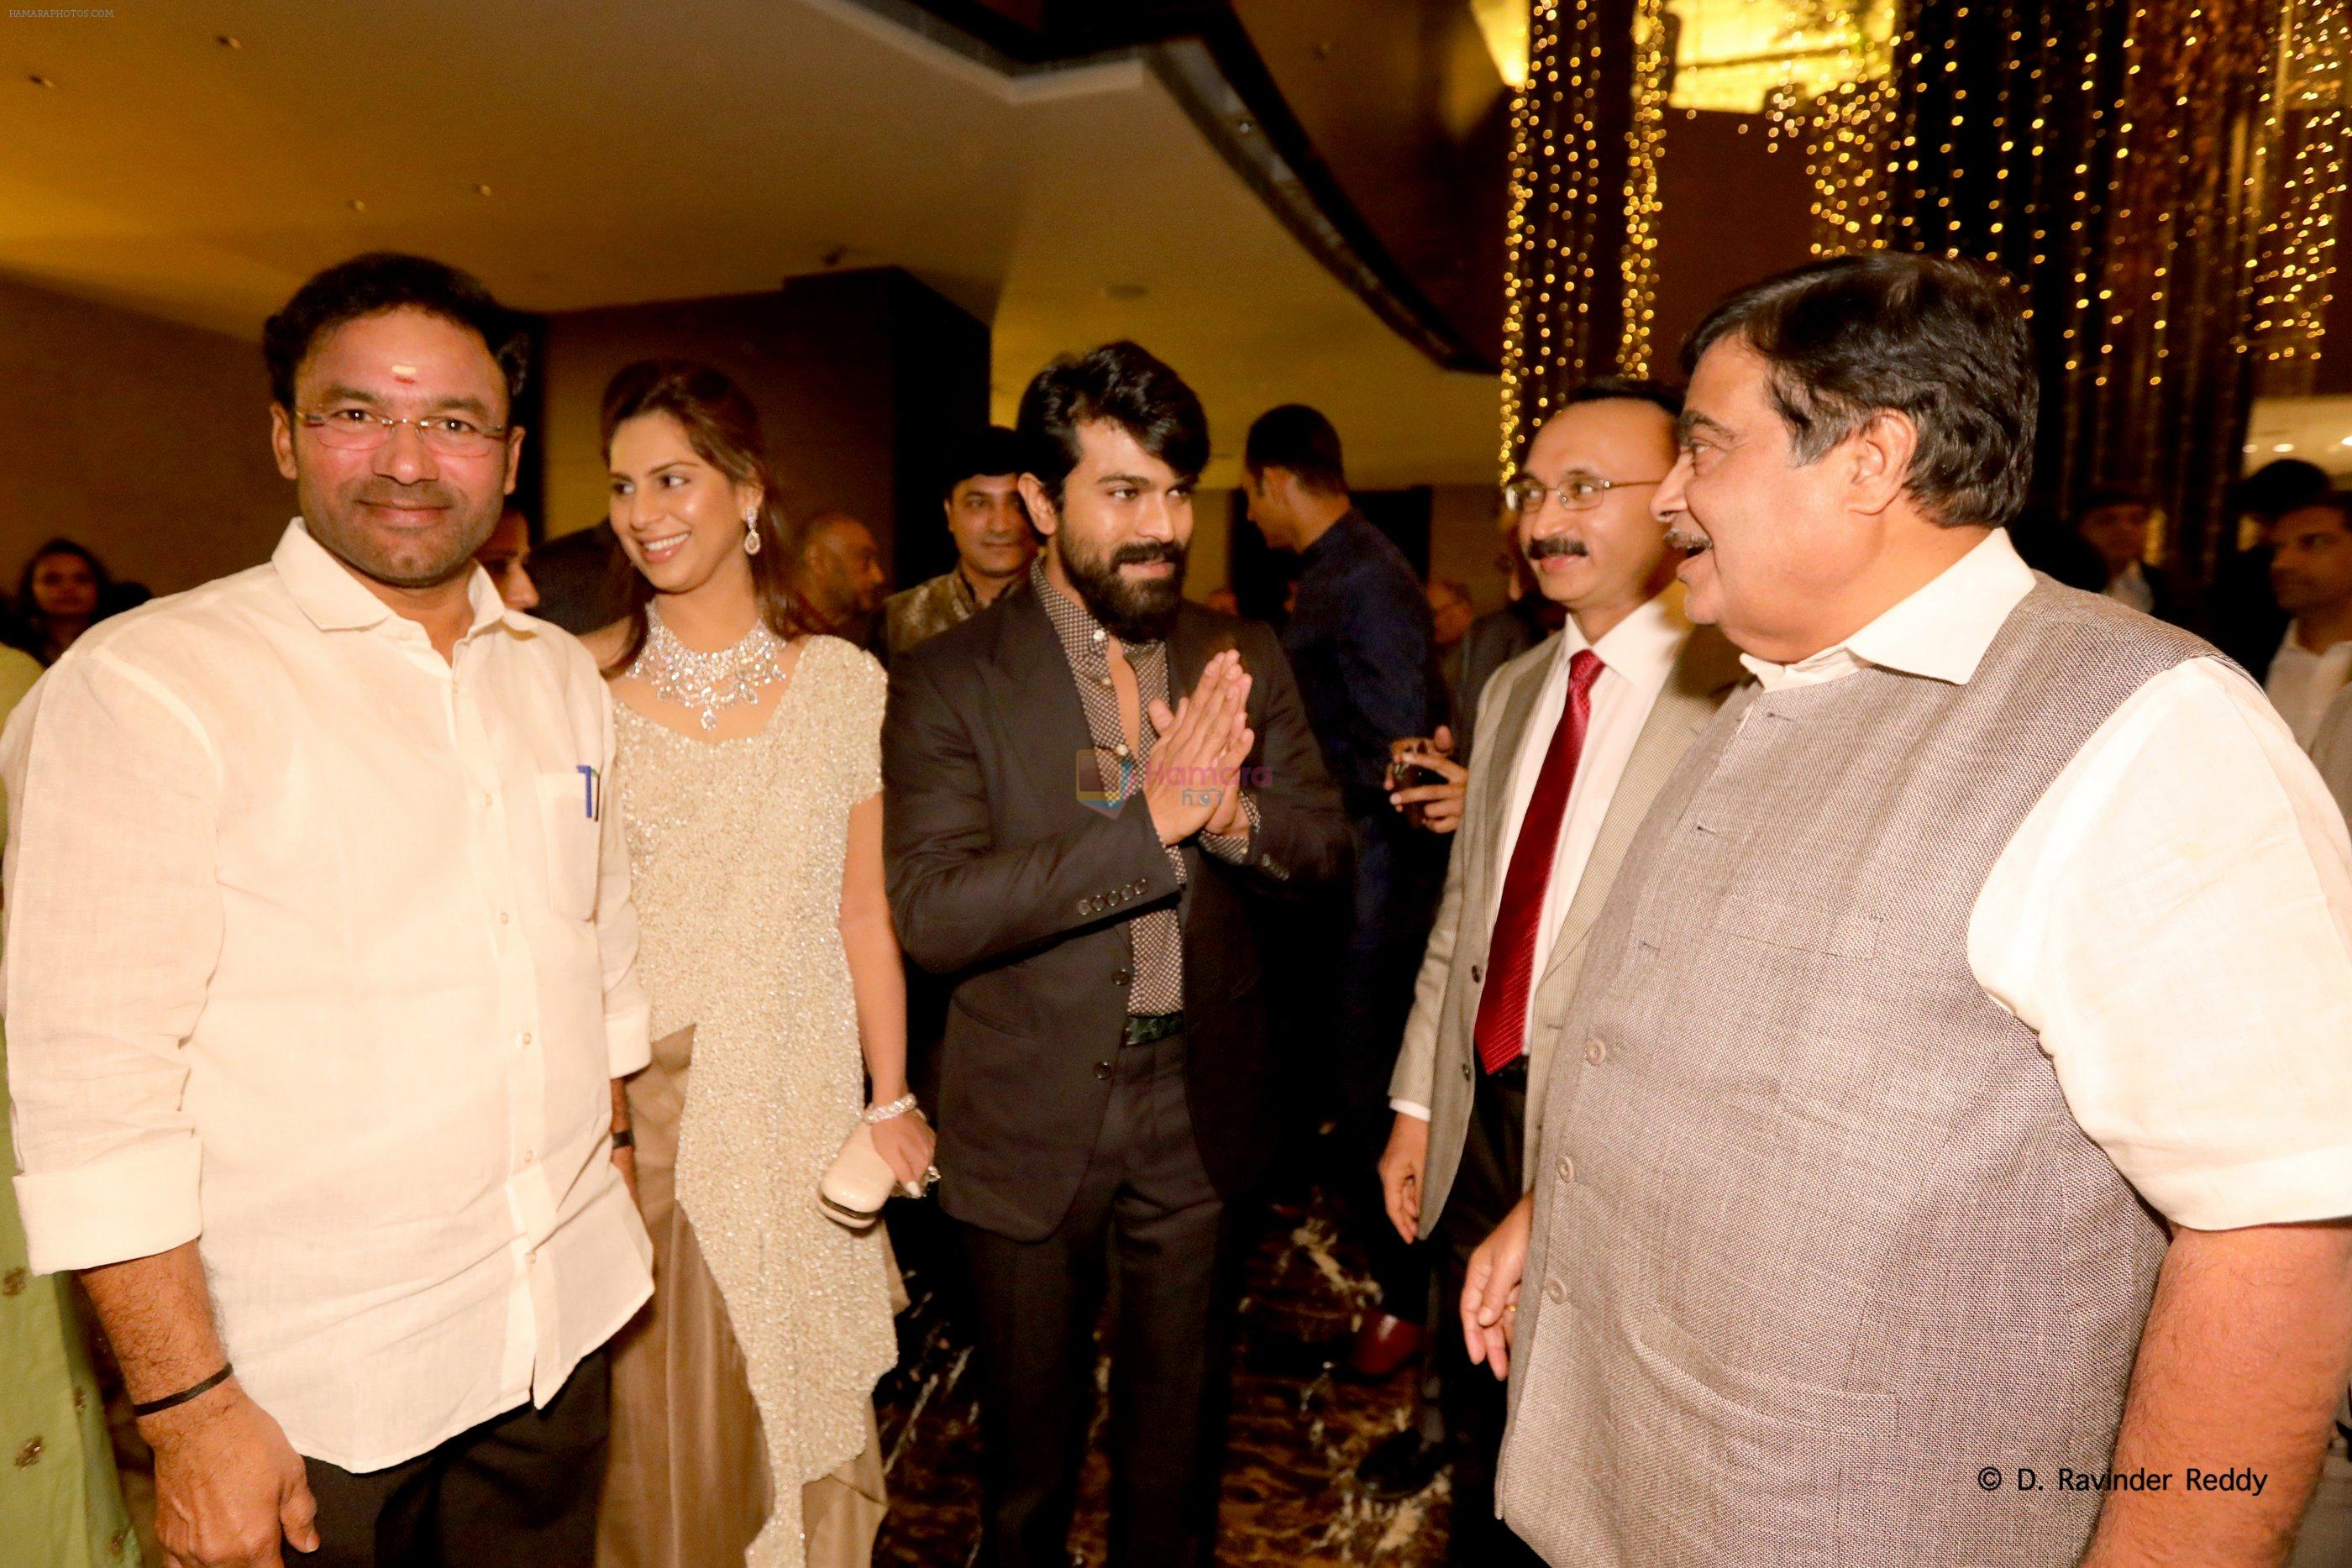 Ram Charan at Kesav and Veena sangeet on 30th Jan 2017